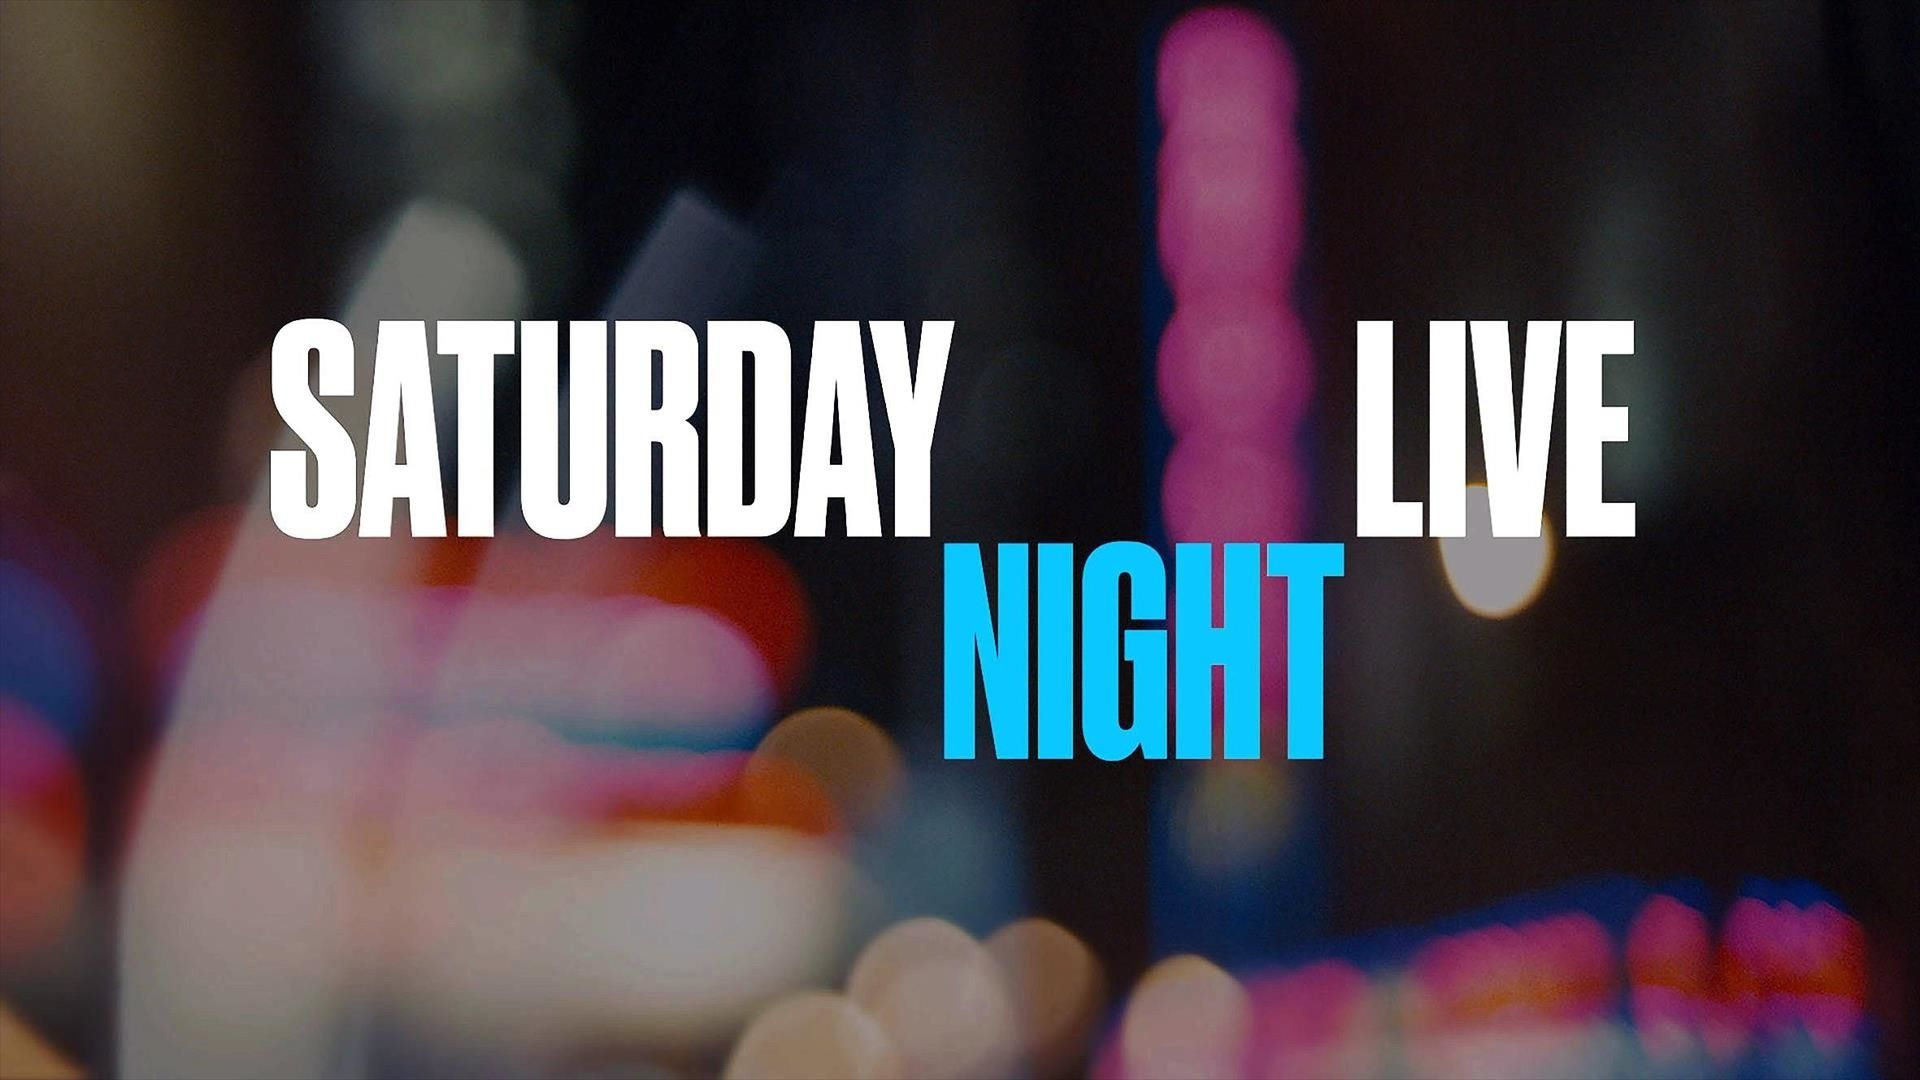 Saturday night live en streaming